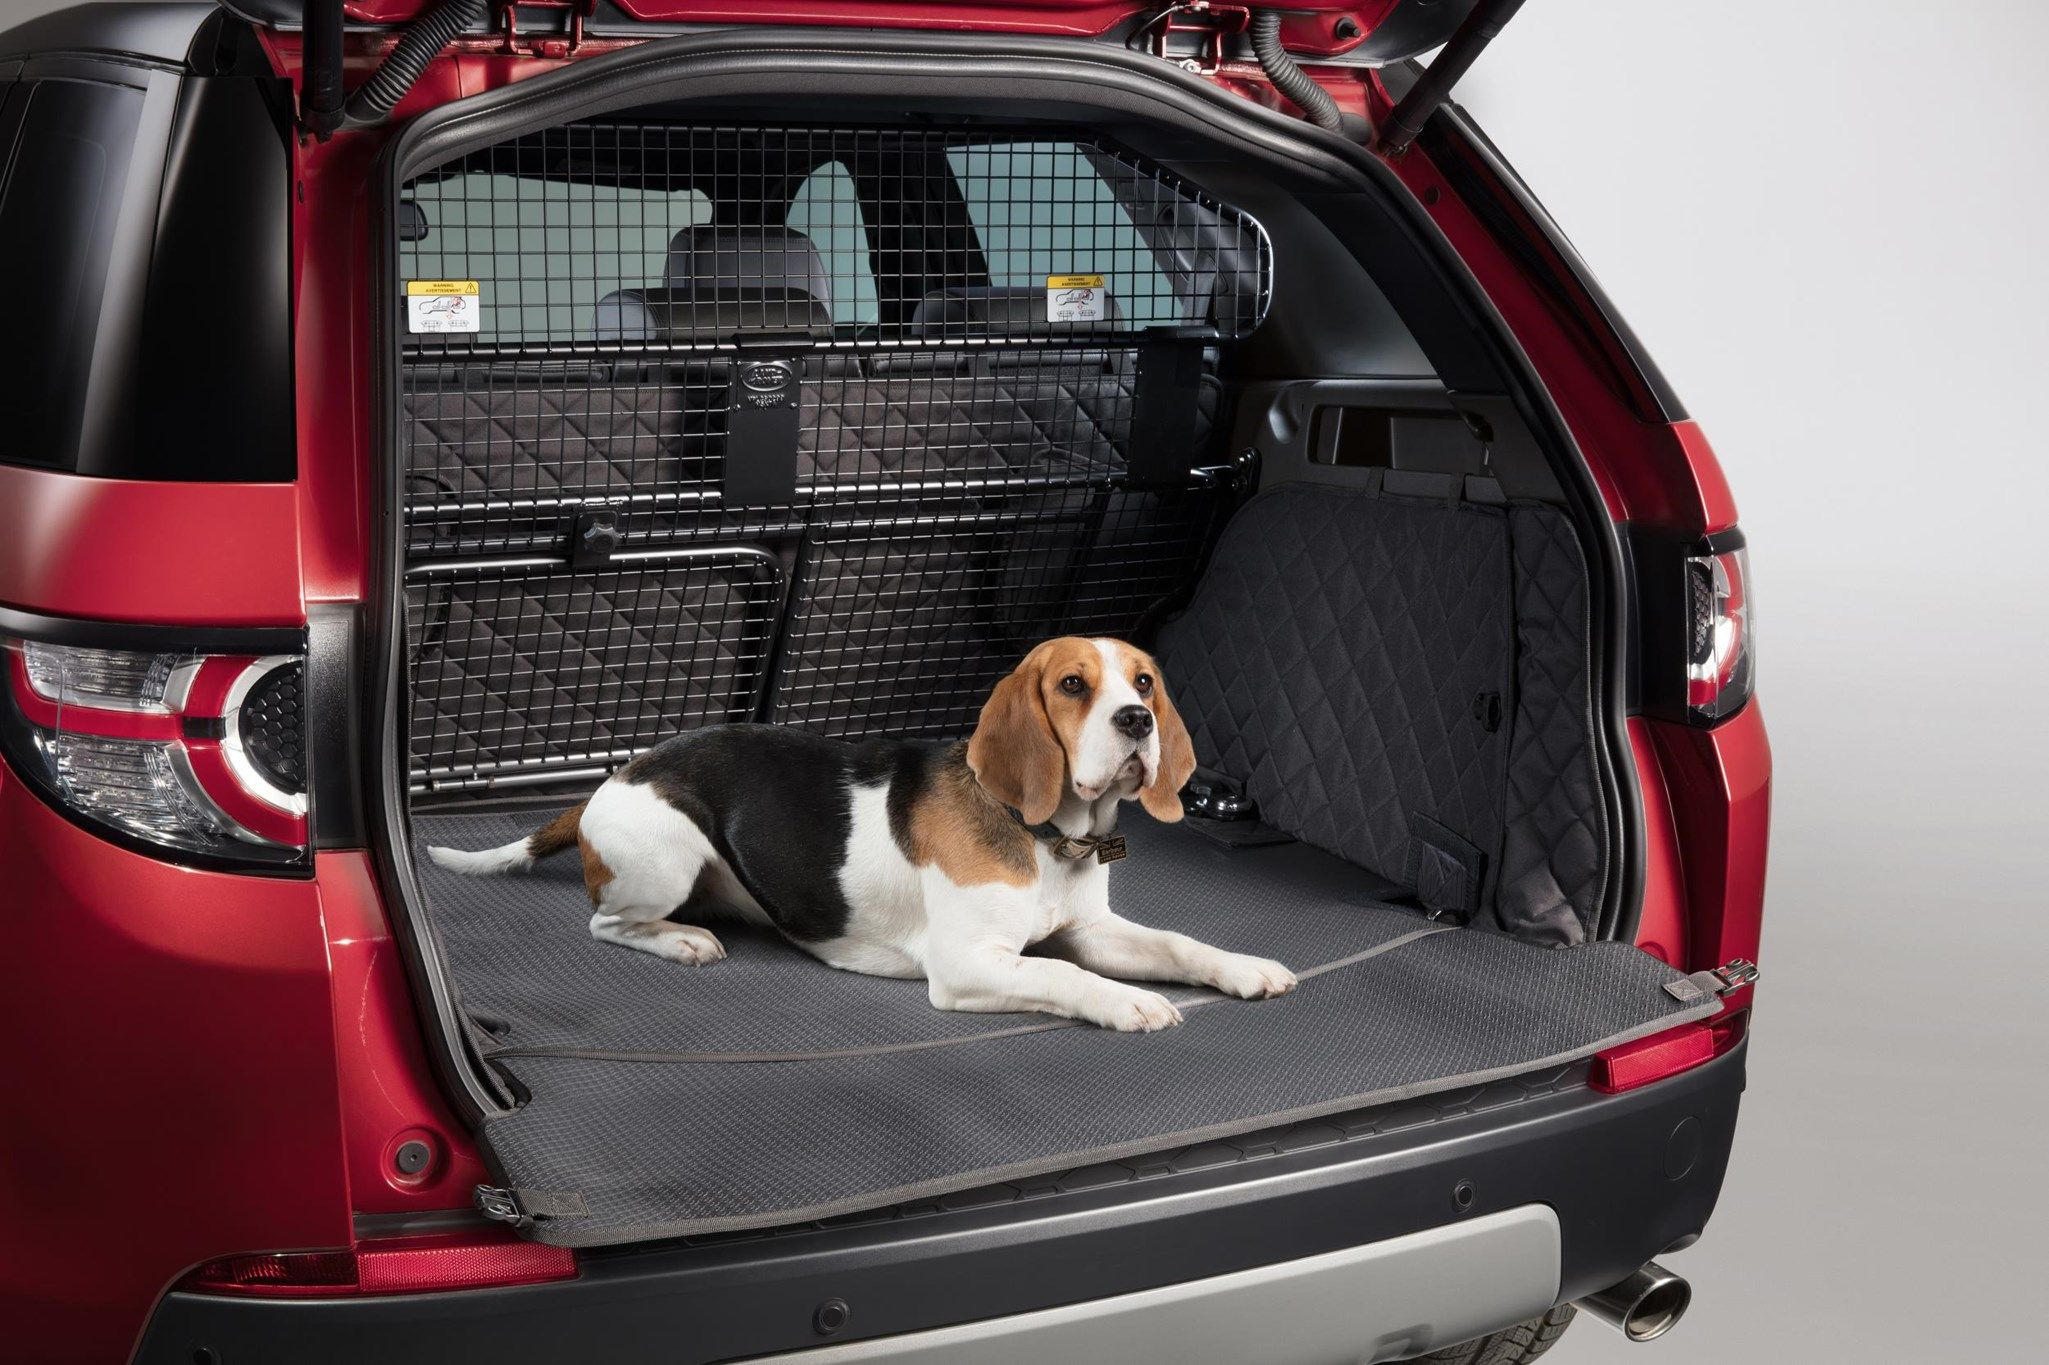 Pet Adoption Transportation Services In 2020 With Images